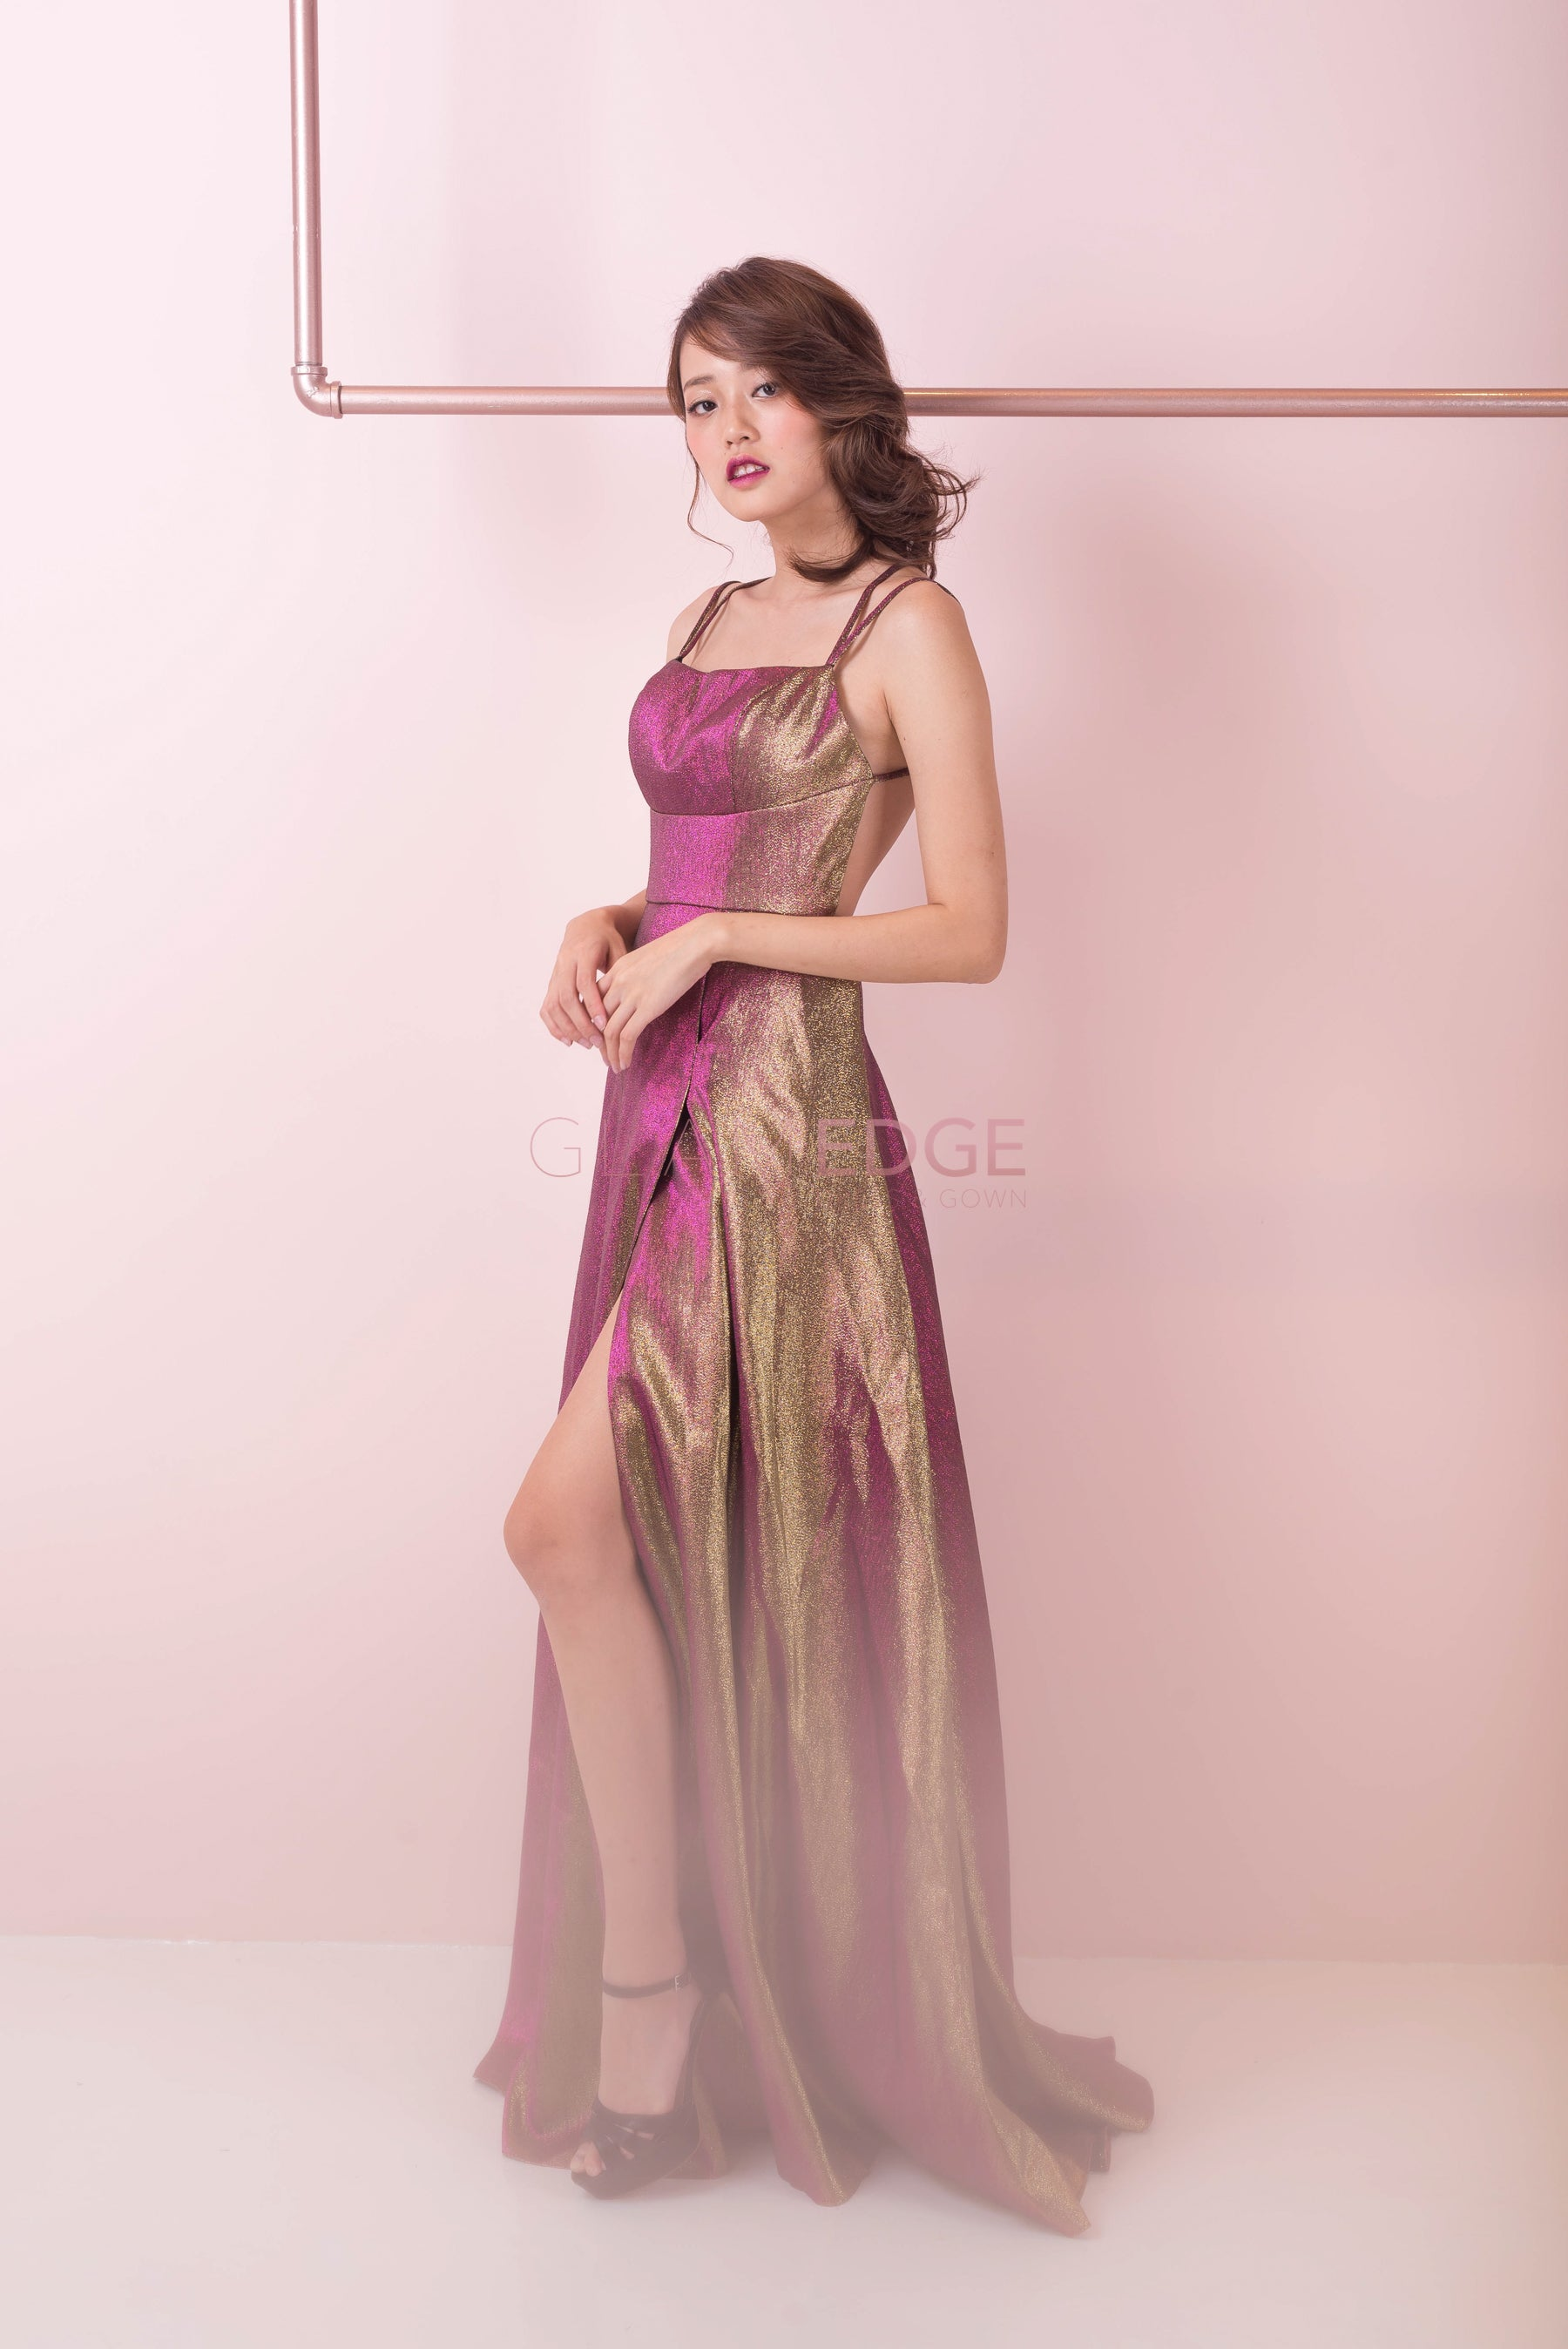 Sherri Pink Gold Dress